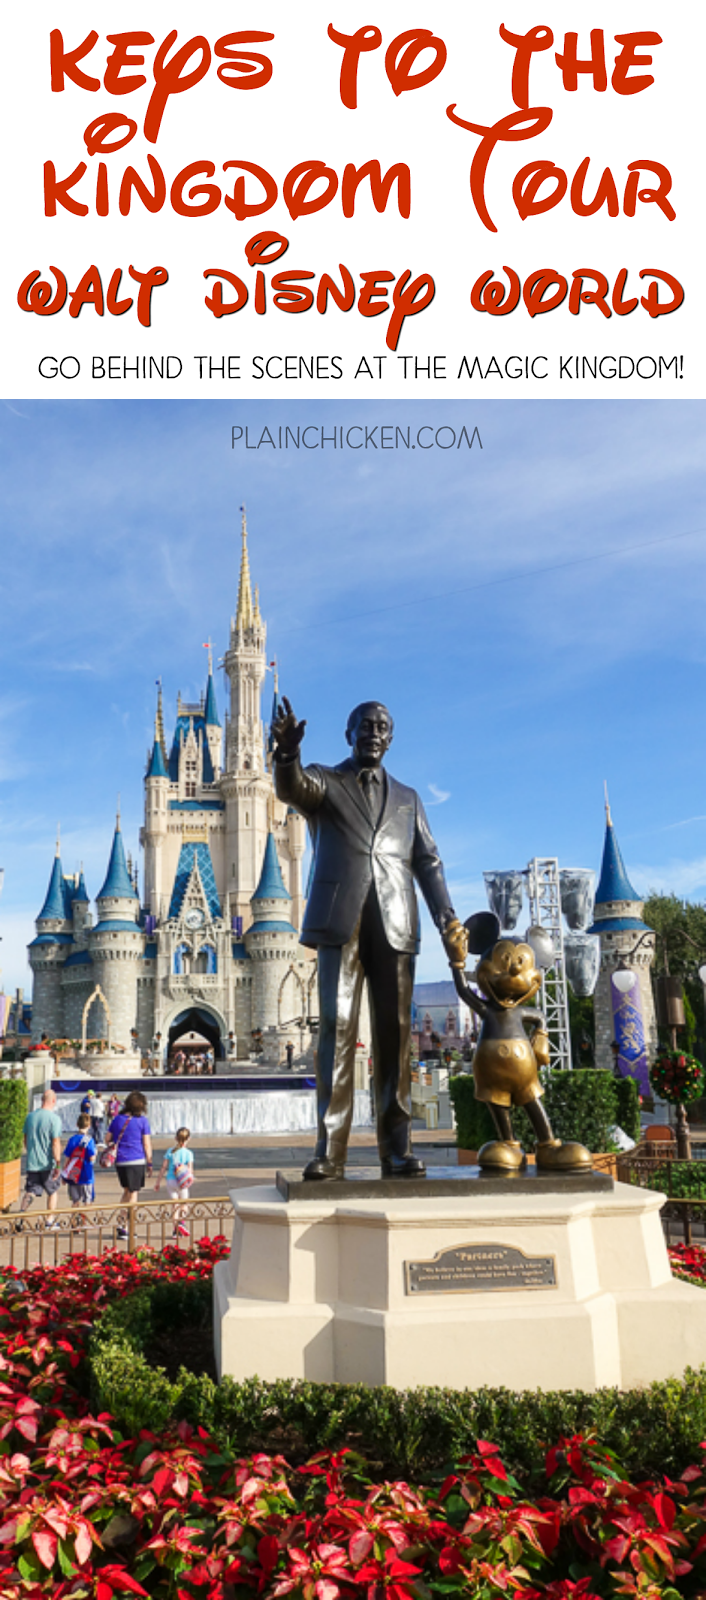 Keys to the Kingdom Tour - Walt Disney World - behind the scenes at The Magic Kingdom at Walt Disney World. Learn fun tidbits about the park and Walt Disney and go in the TUNNELS under the park! The highlight of our trip!